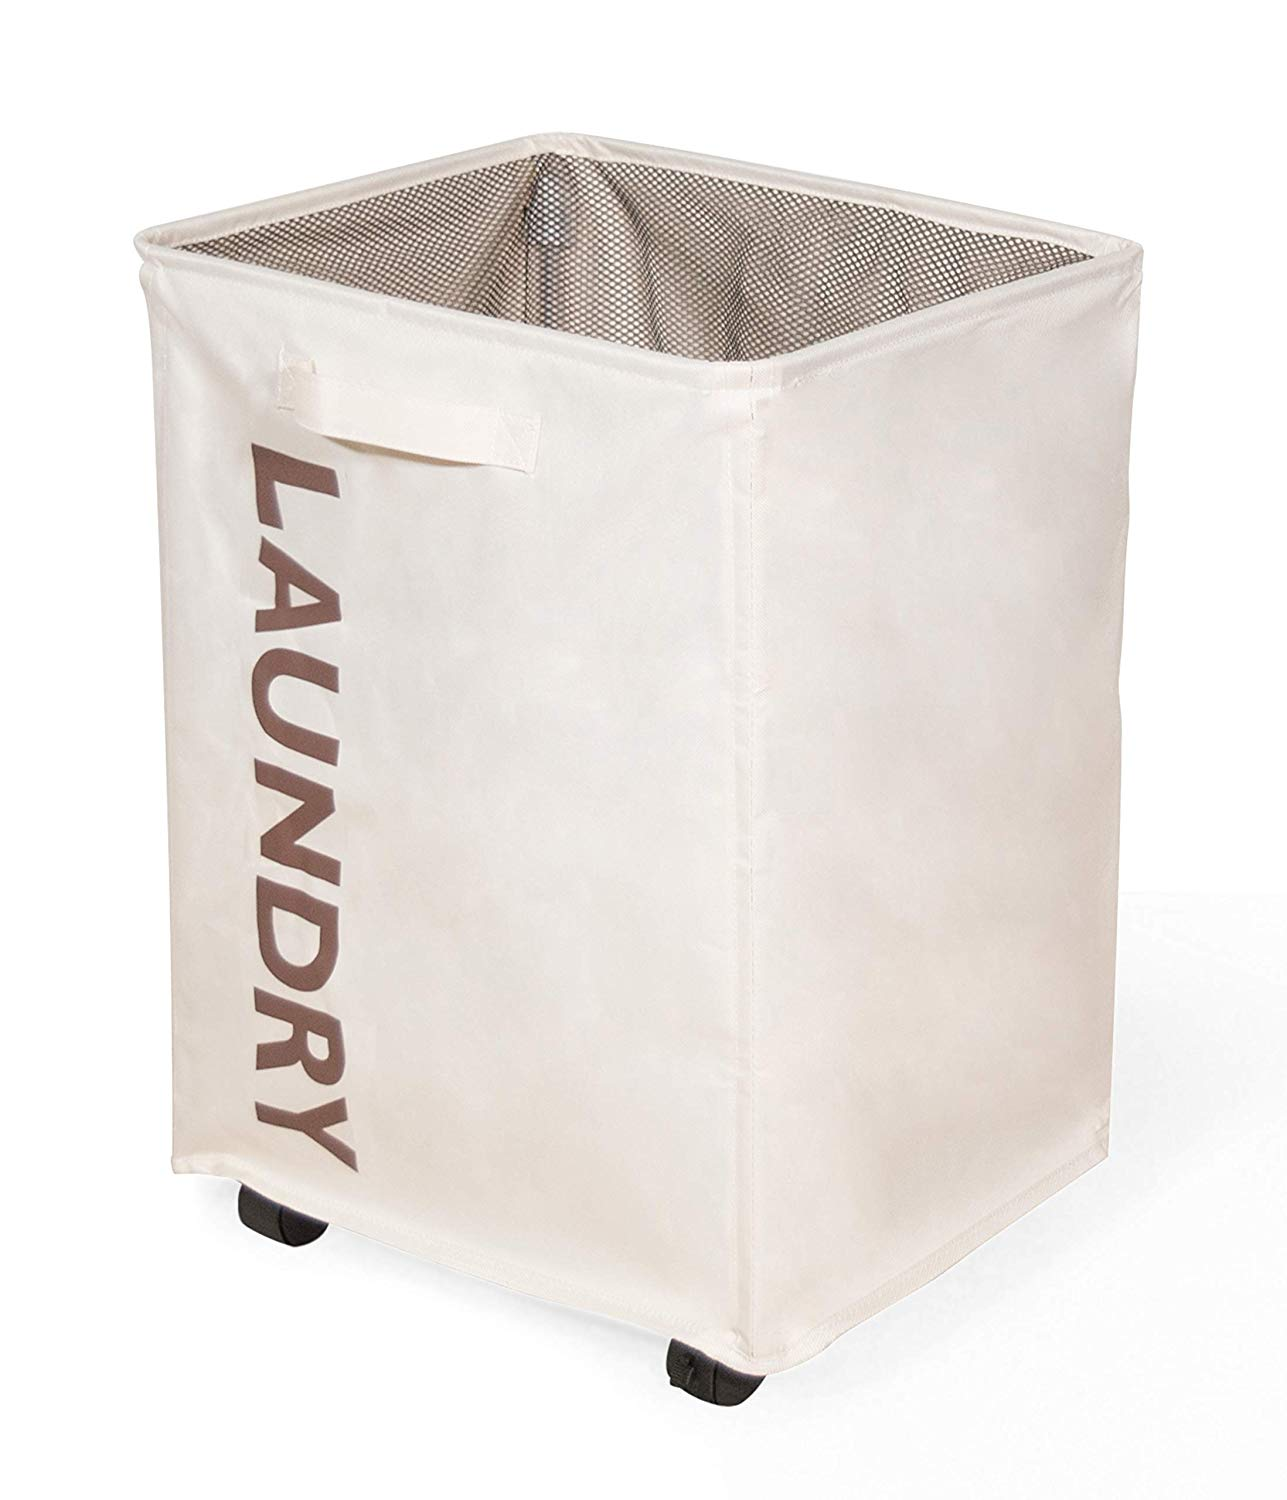 Laundry Hamper with Lockable Wheels, and Mesh Drawstring Closure